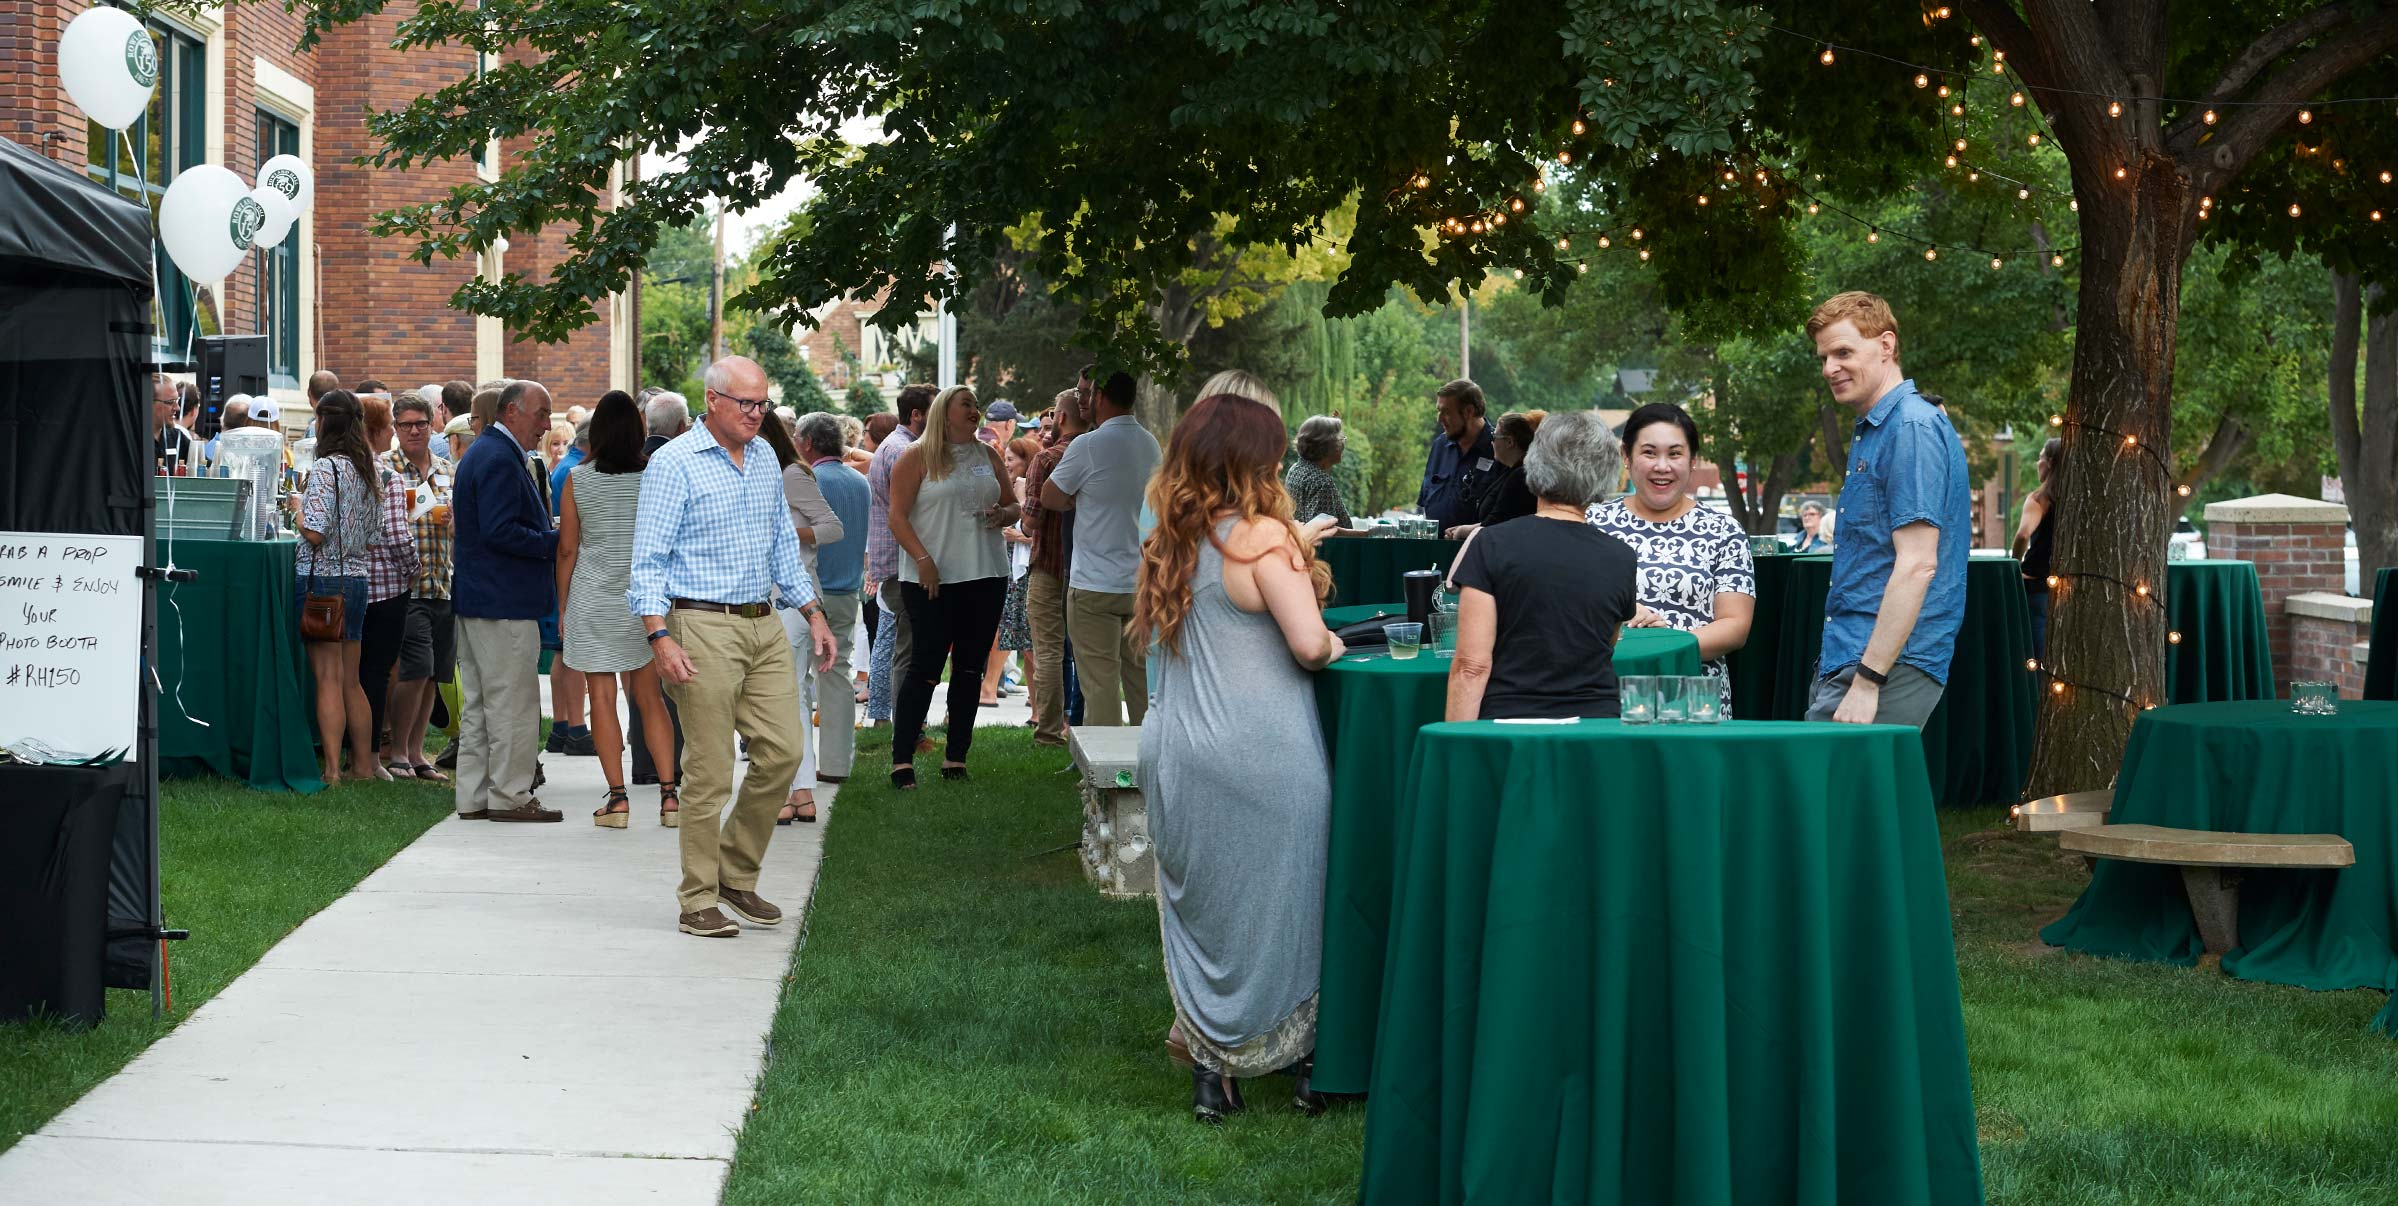 Alumni mingling outside at the fall 2017 all-class reunion for Rowland Hall's sesquicentennial